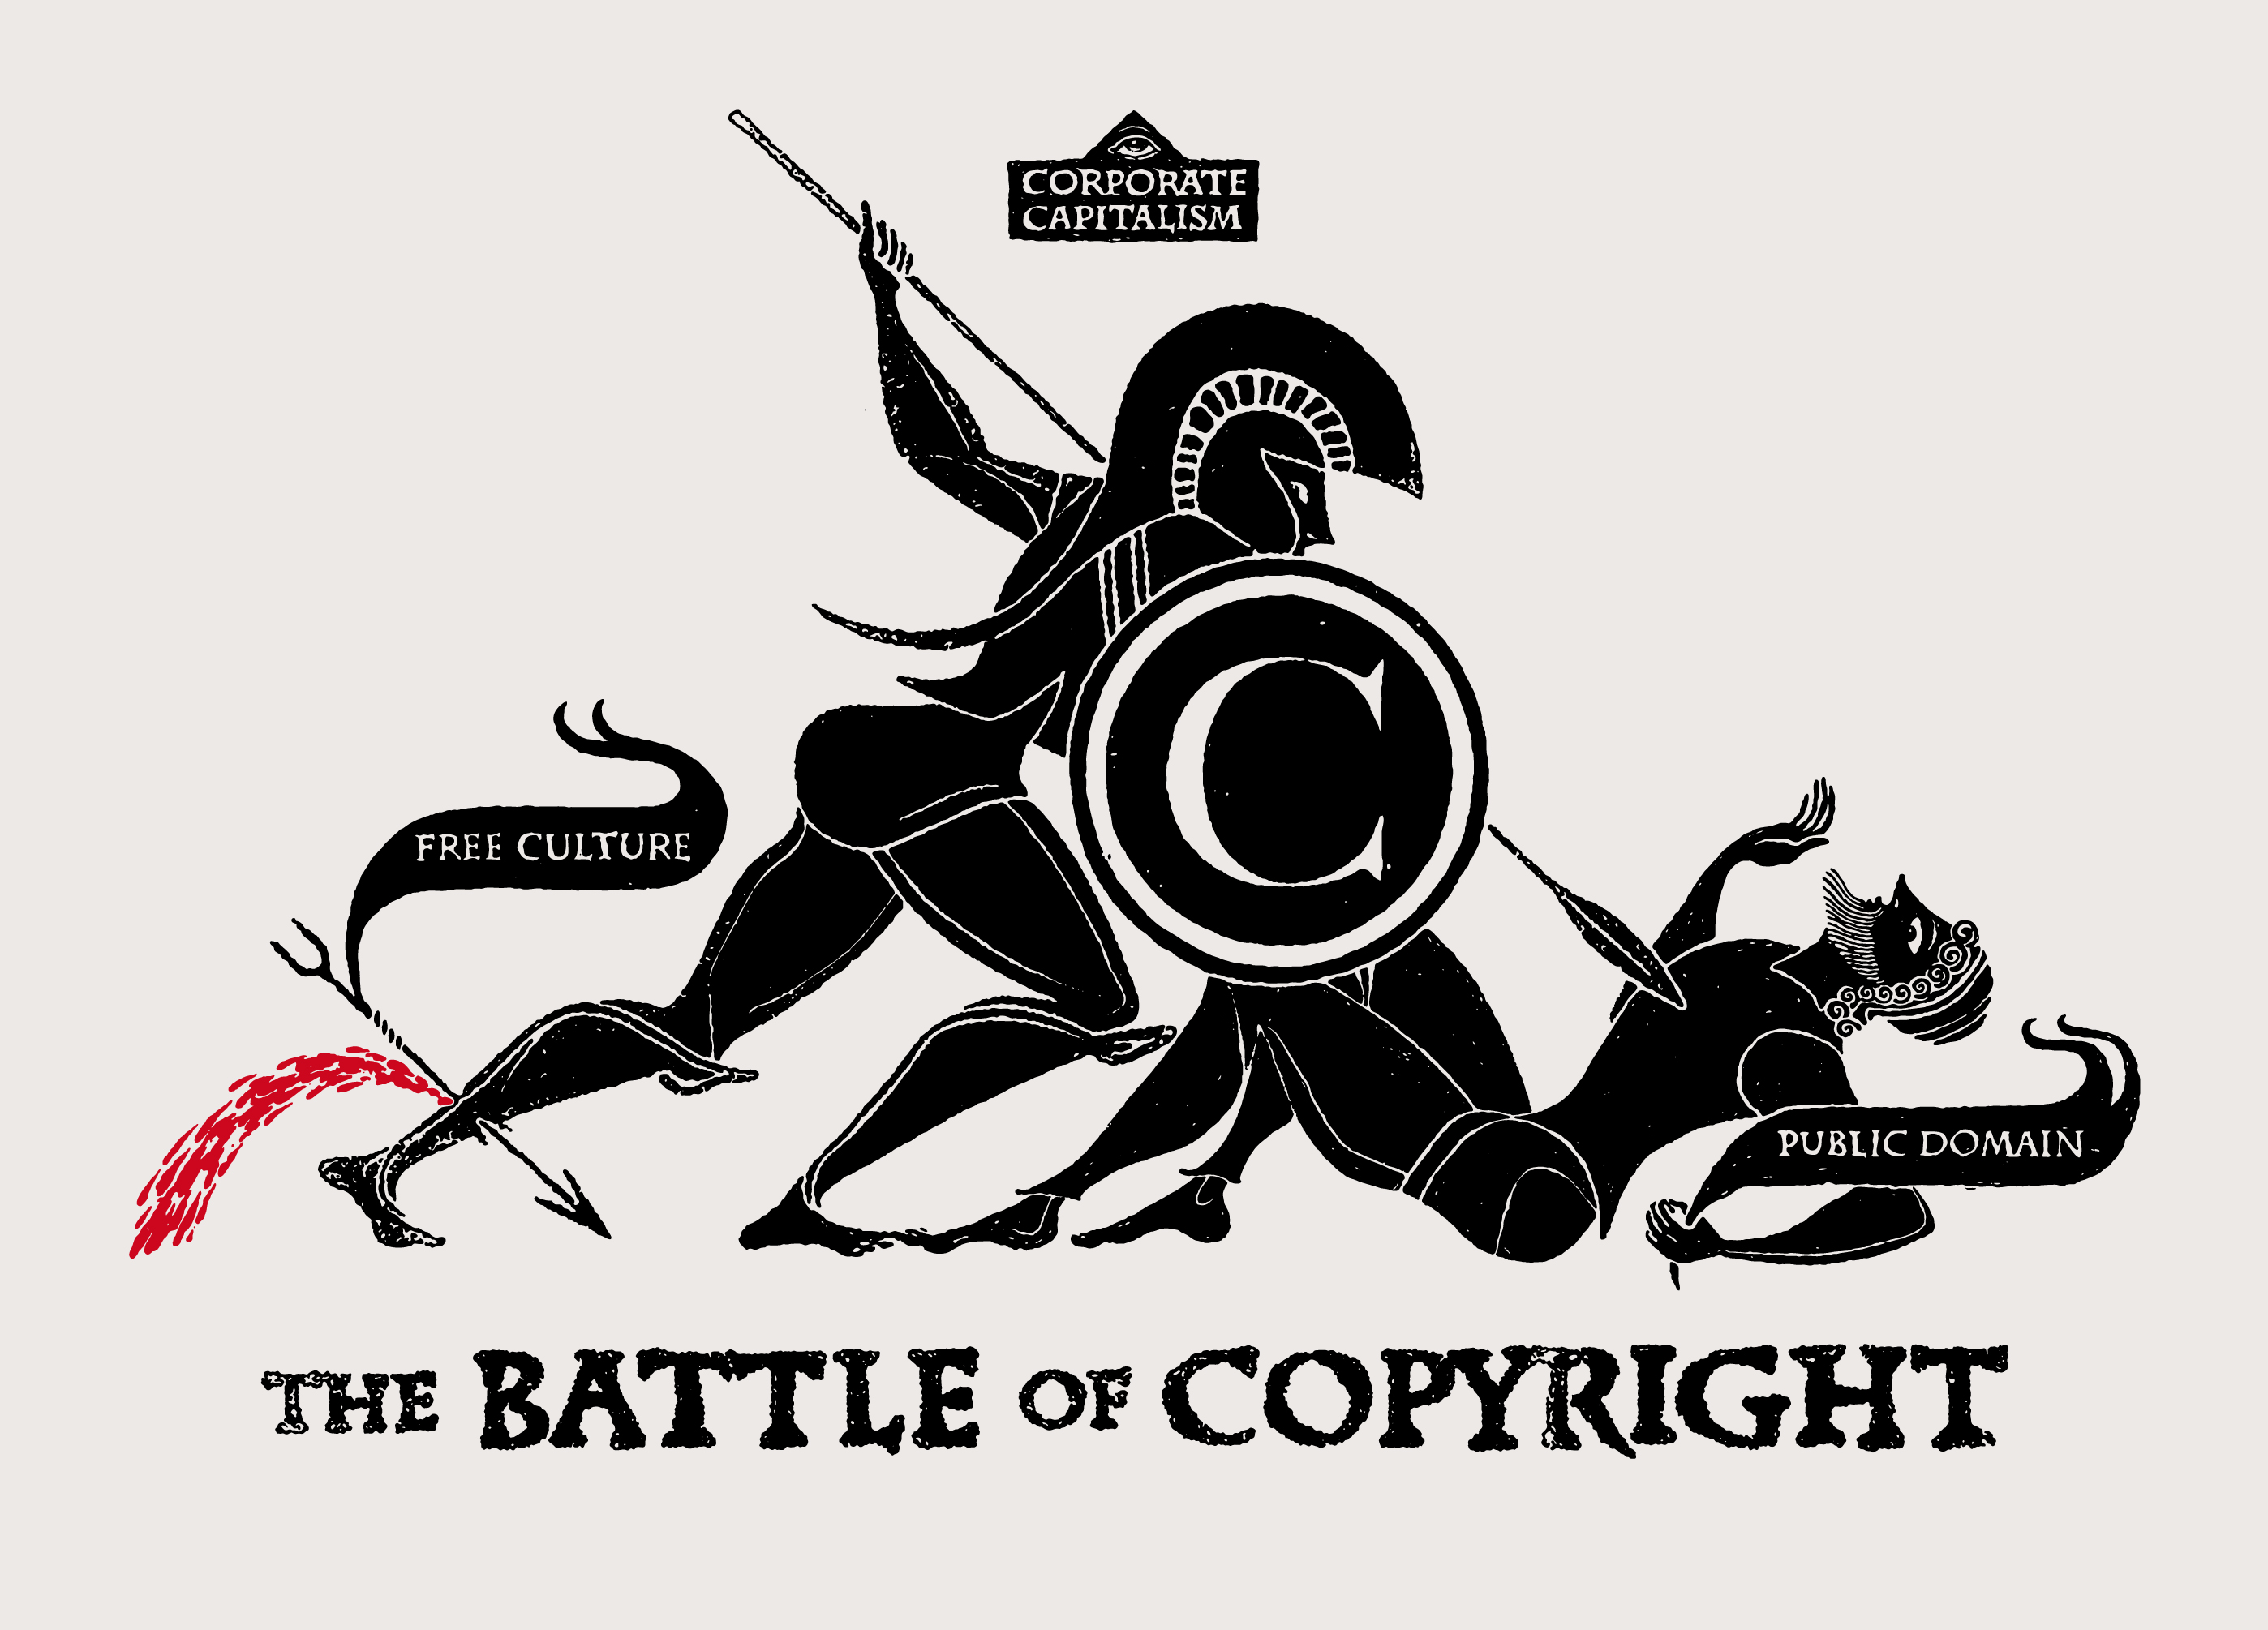 THE BATTLE OF COPYRIGHT LinuxFr Org